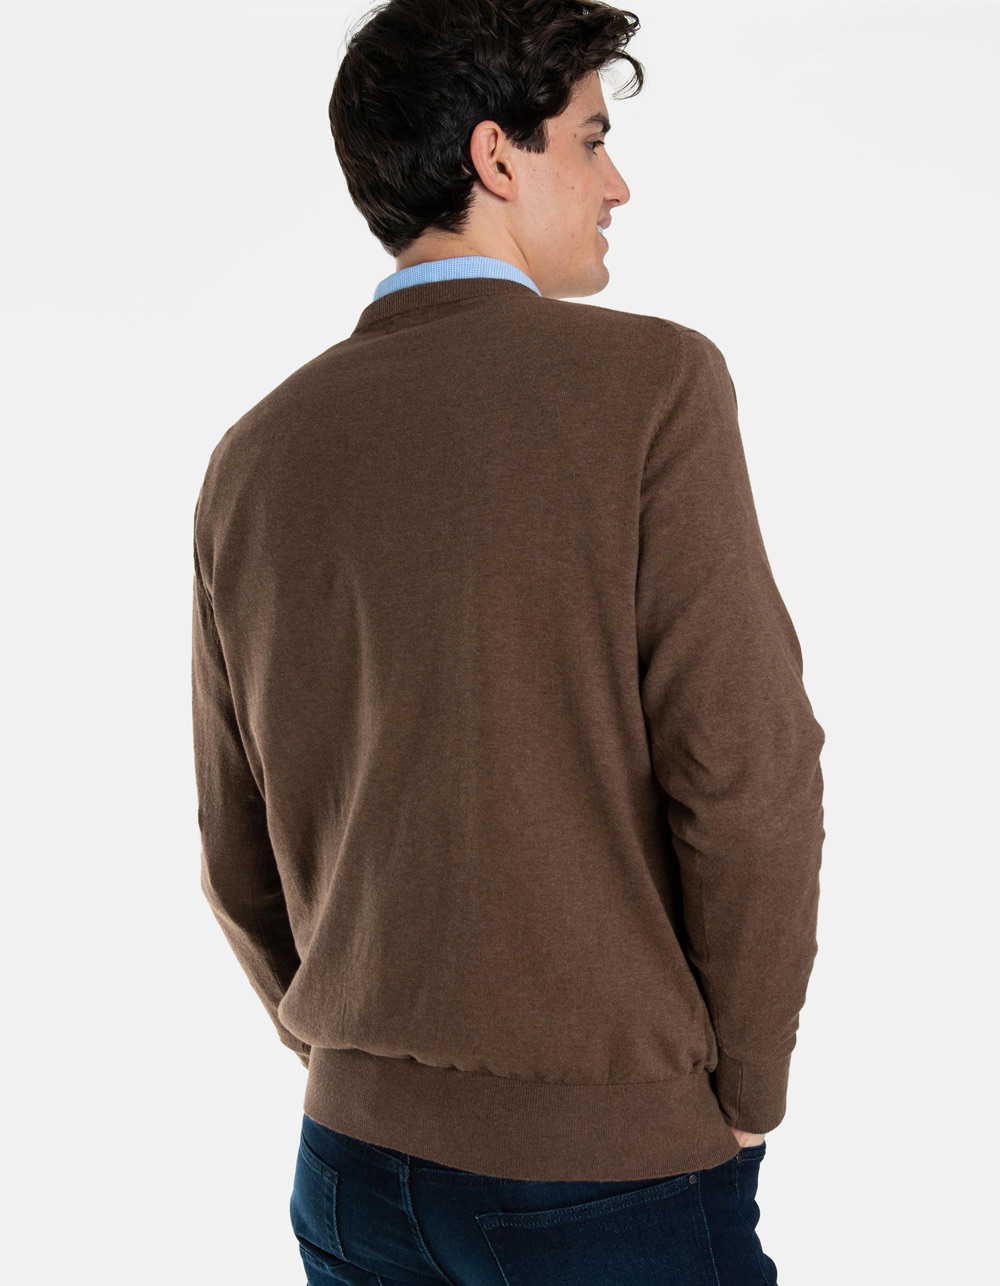 Brown v-neck sweater - Backside